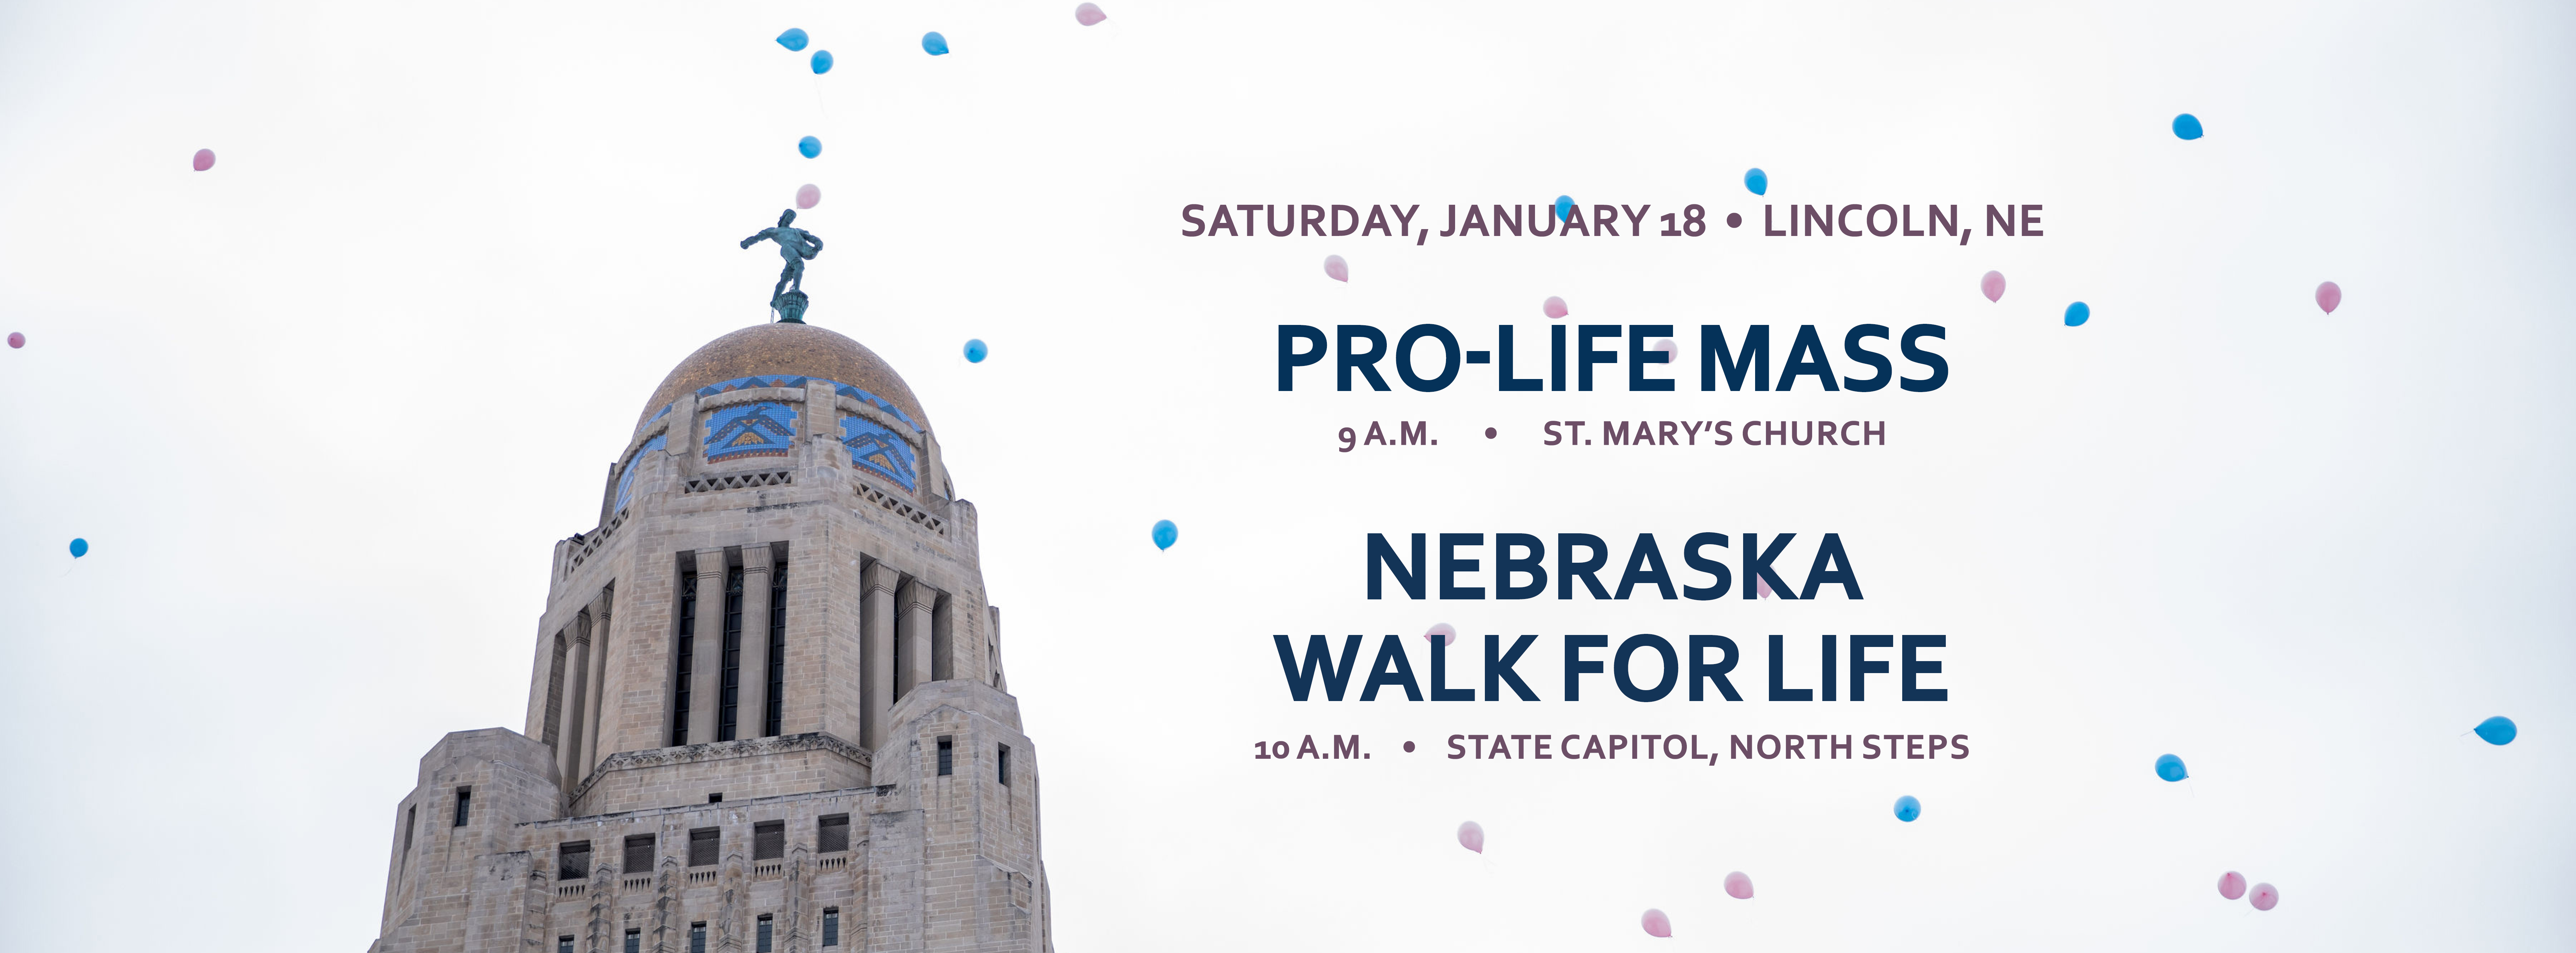 Pro-Life Mass and Walk for Life